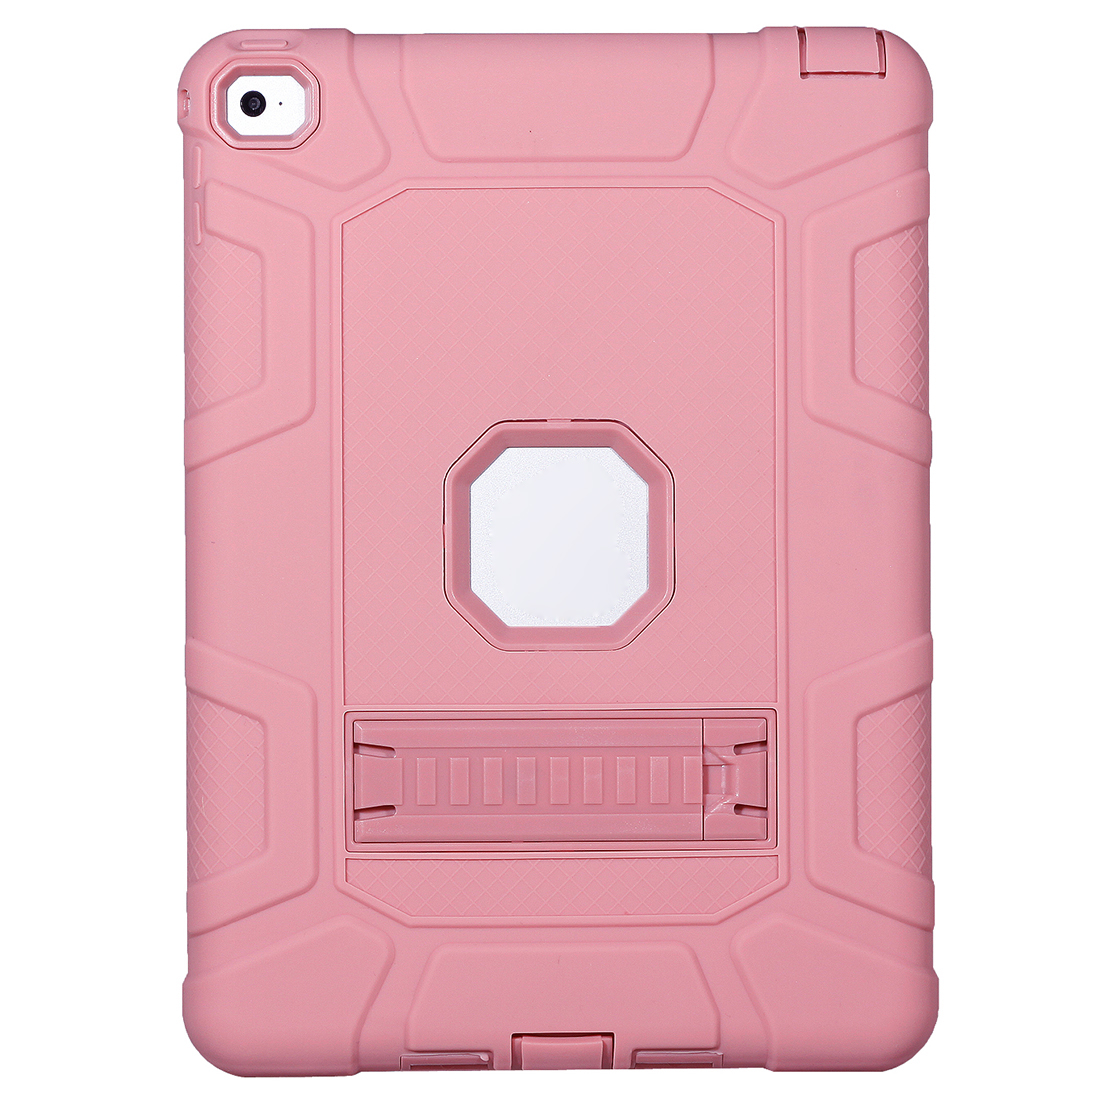 Shockproof Heavy Duty Rubber Hard Stand Case Cover For iPad Air2/iPad 6 Color: Rose Gold+Rose Gold ...